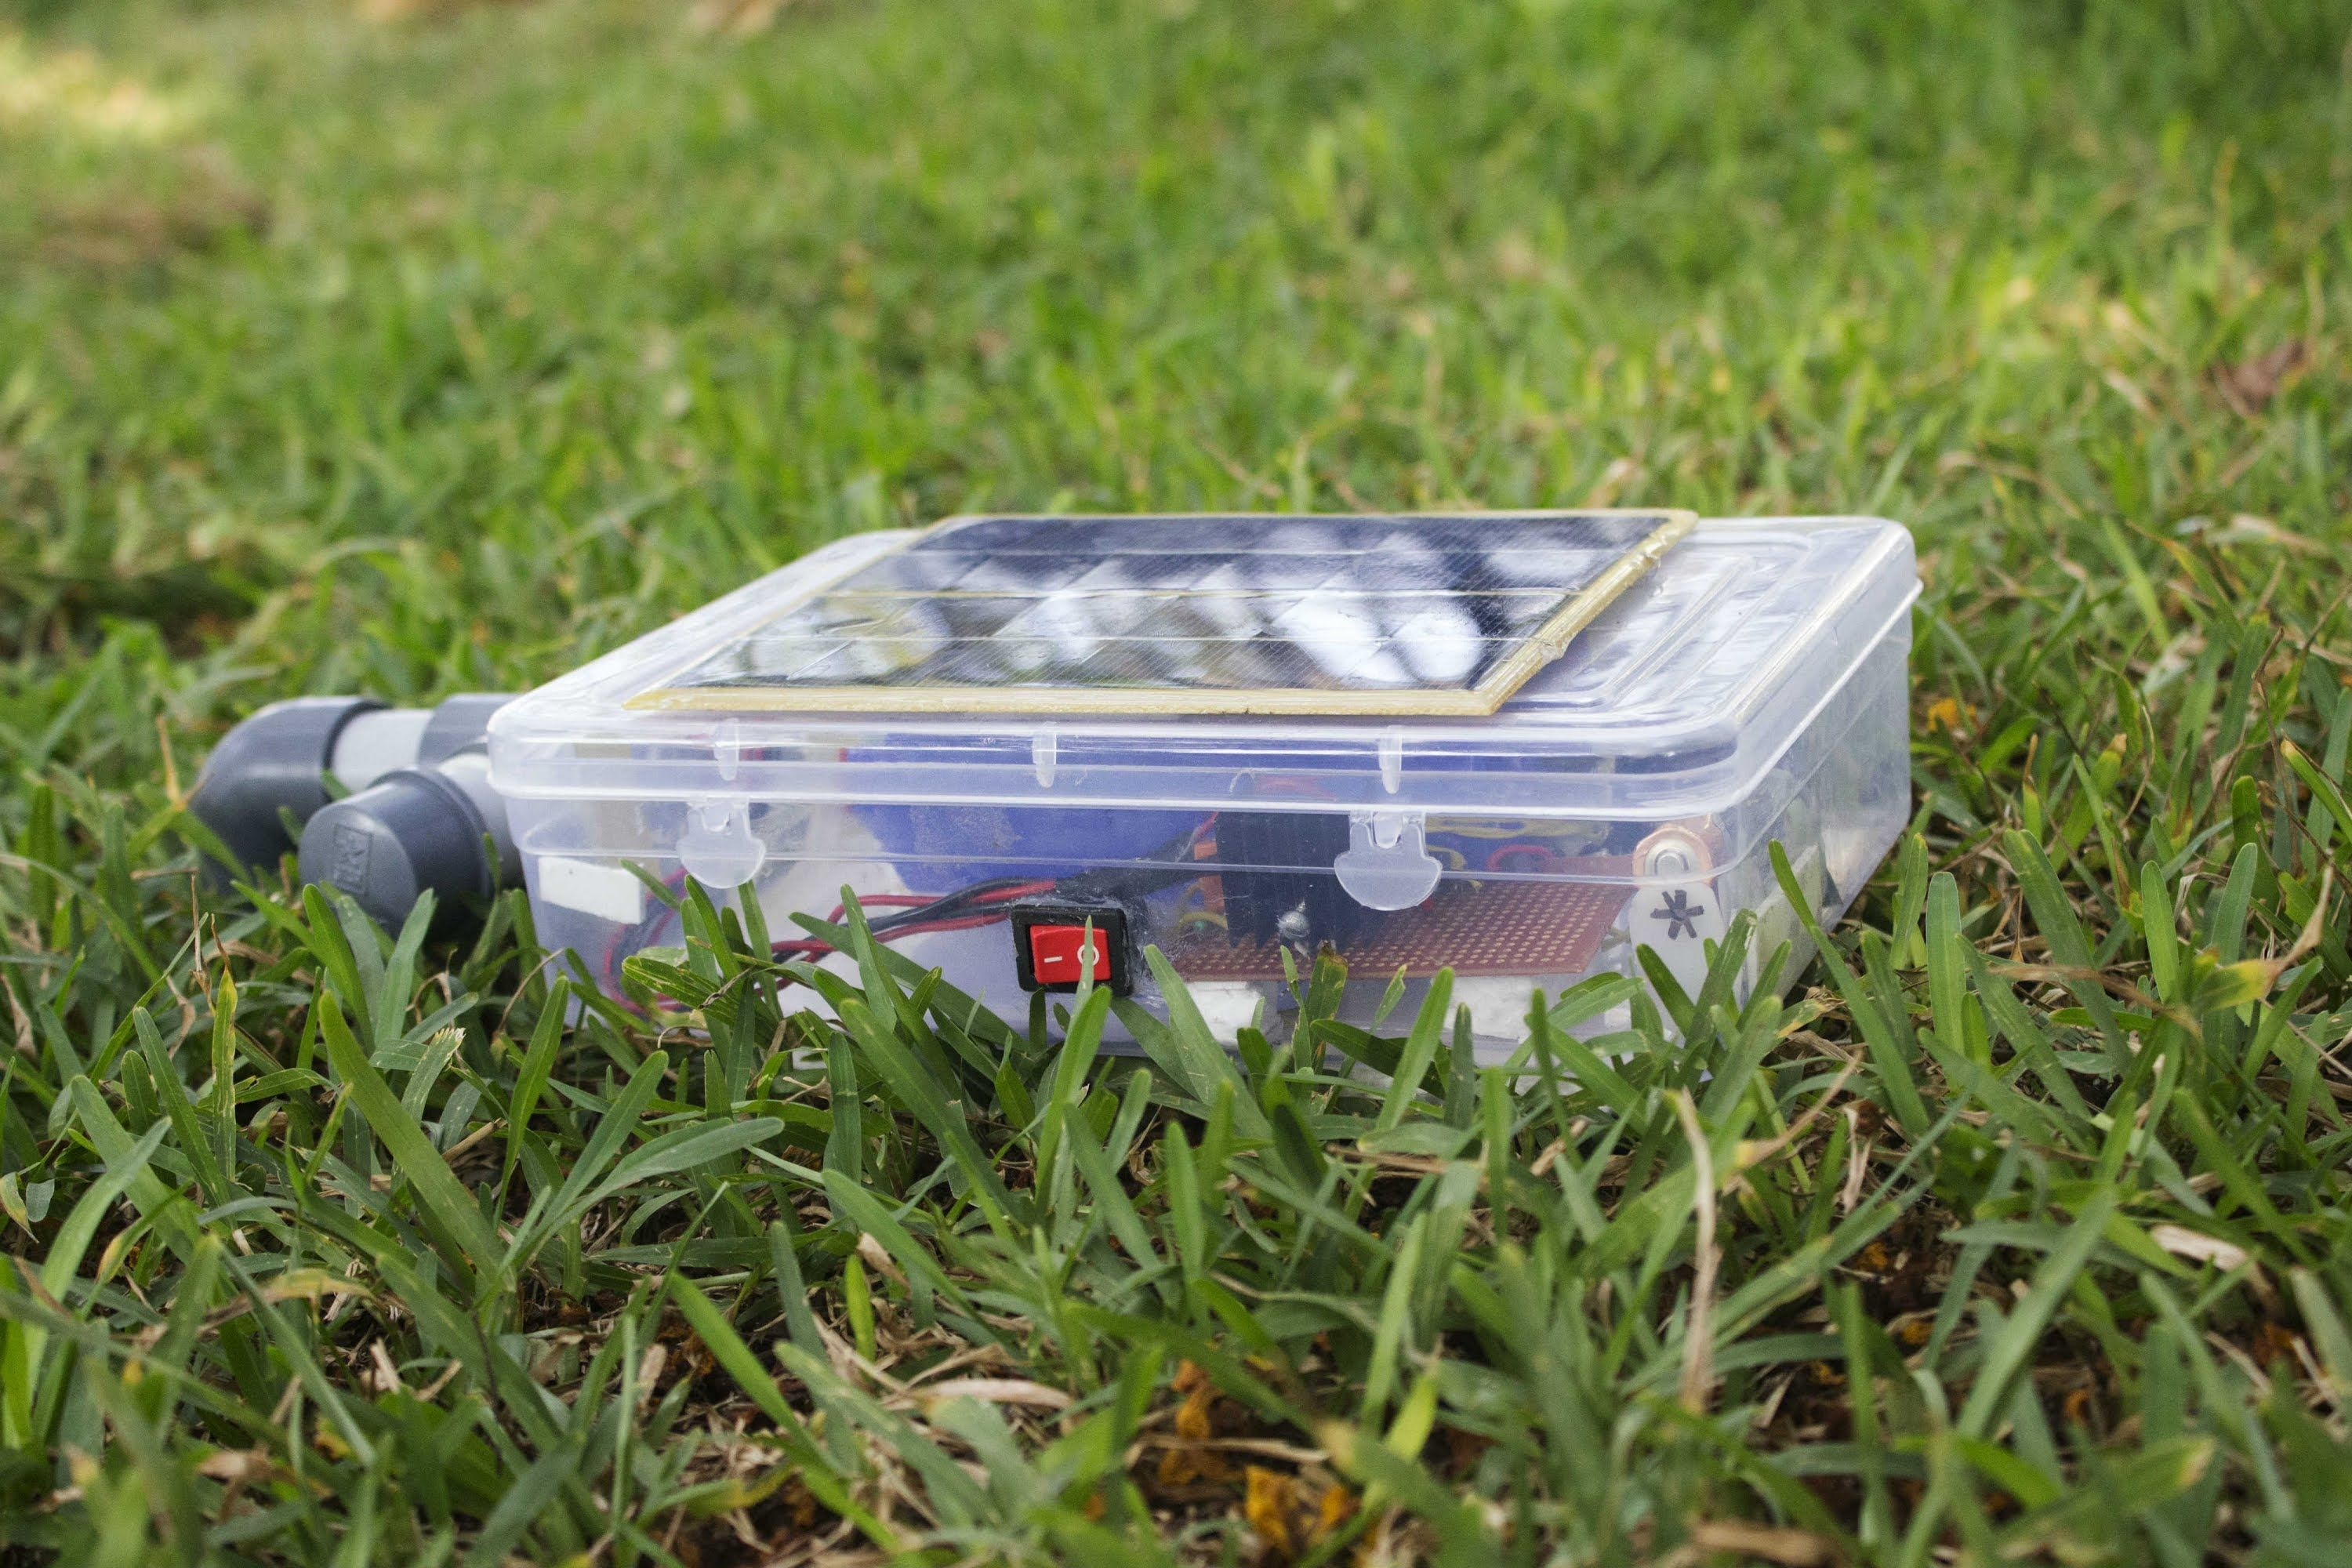 Solar Powered Floating Surface Aerator That Can Be